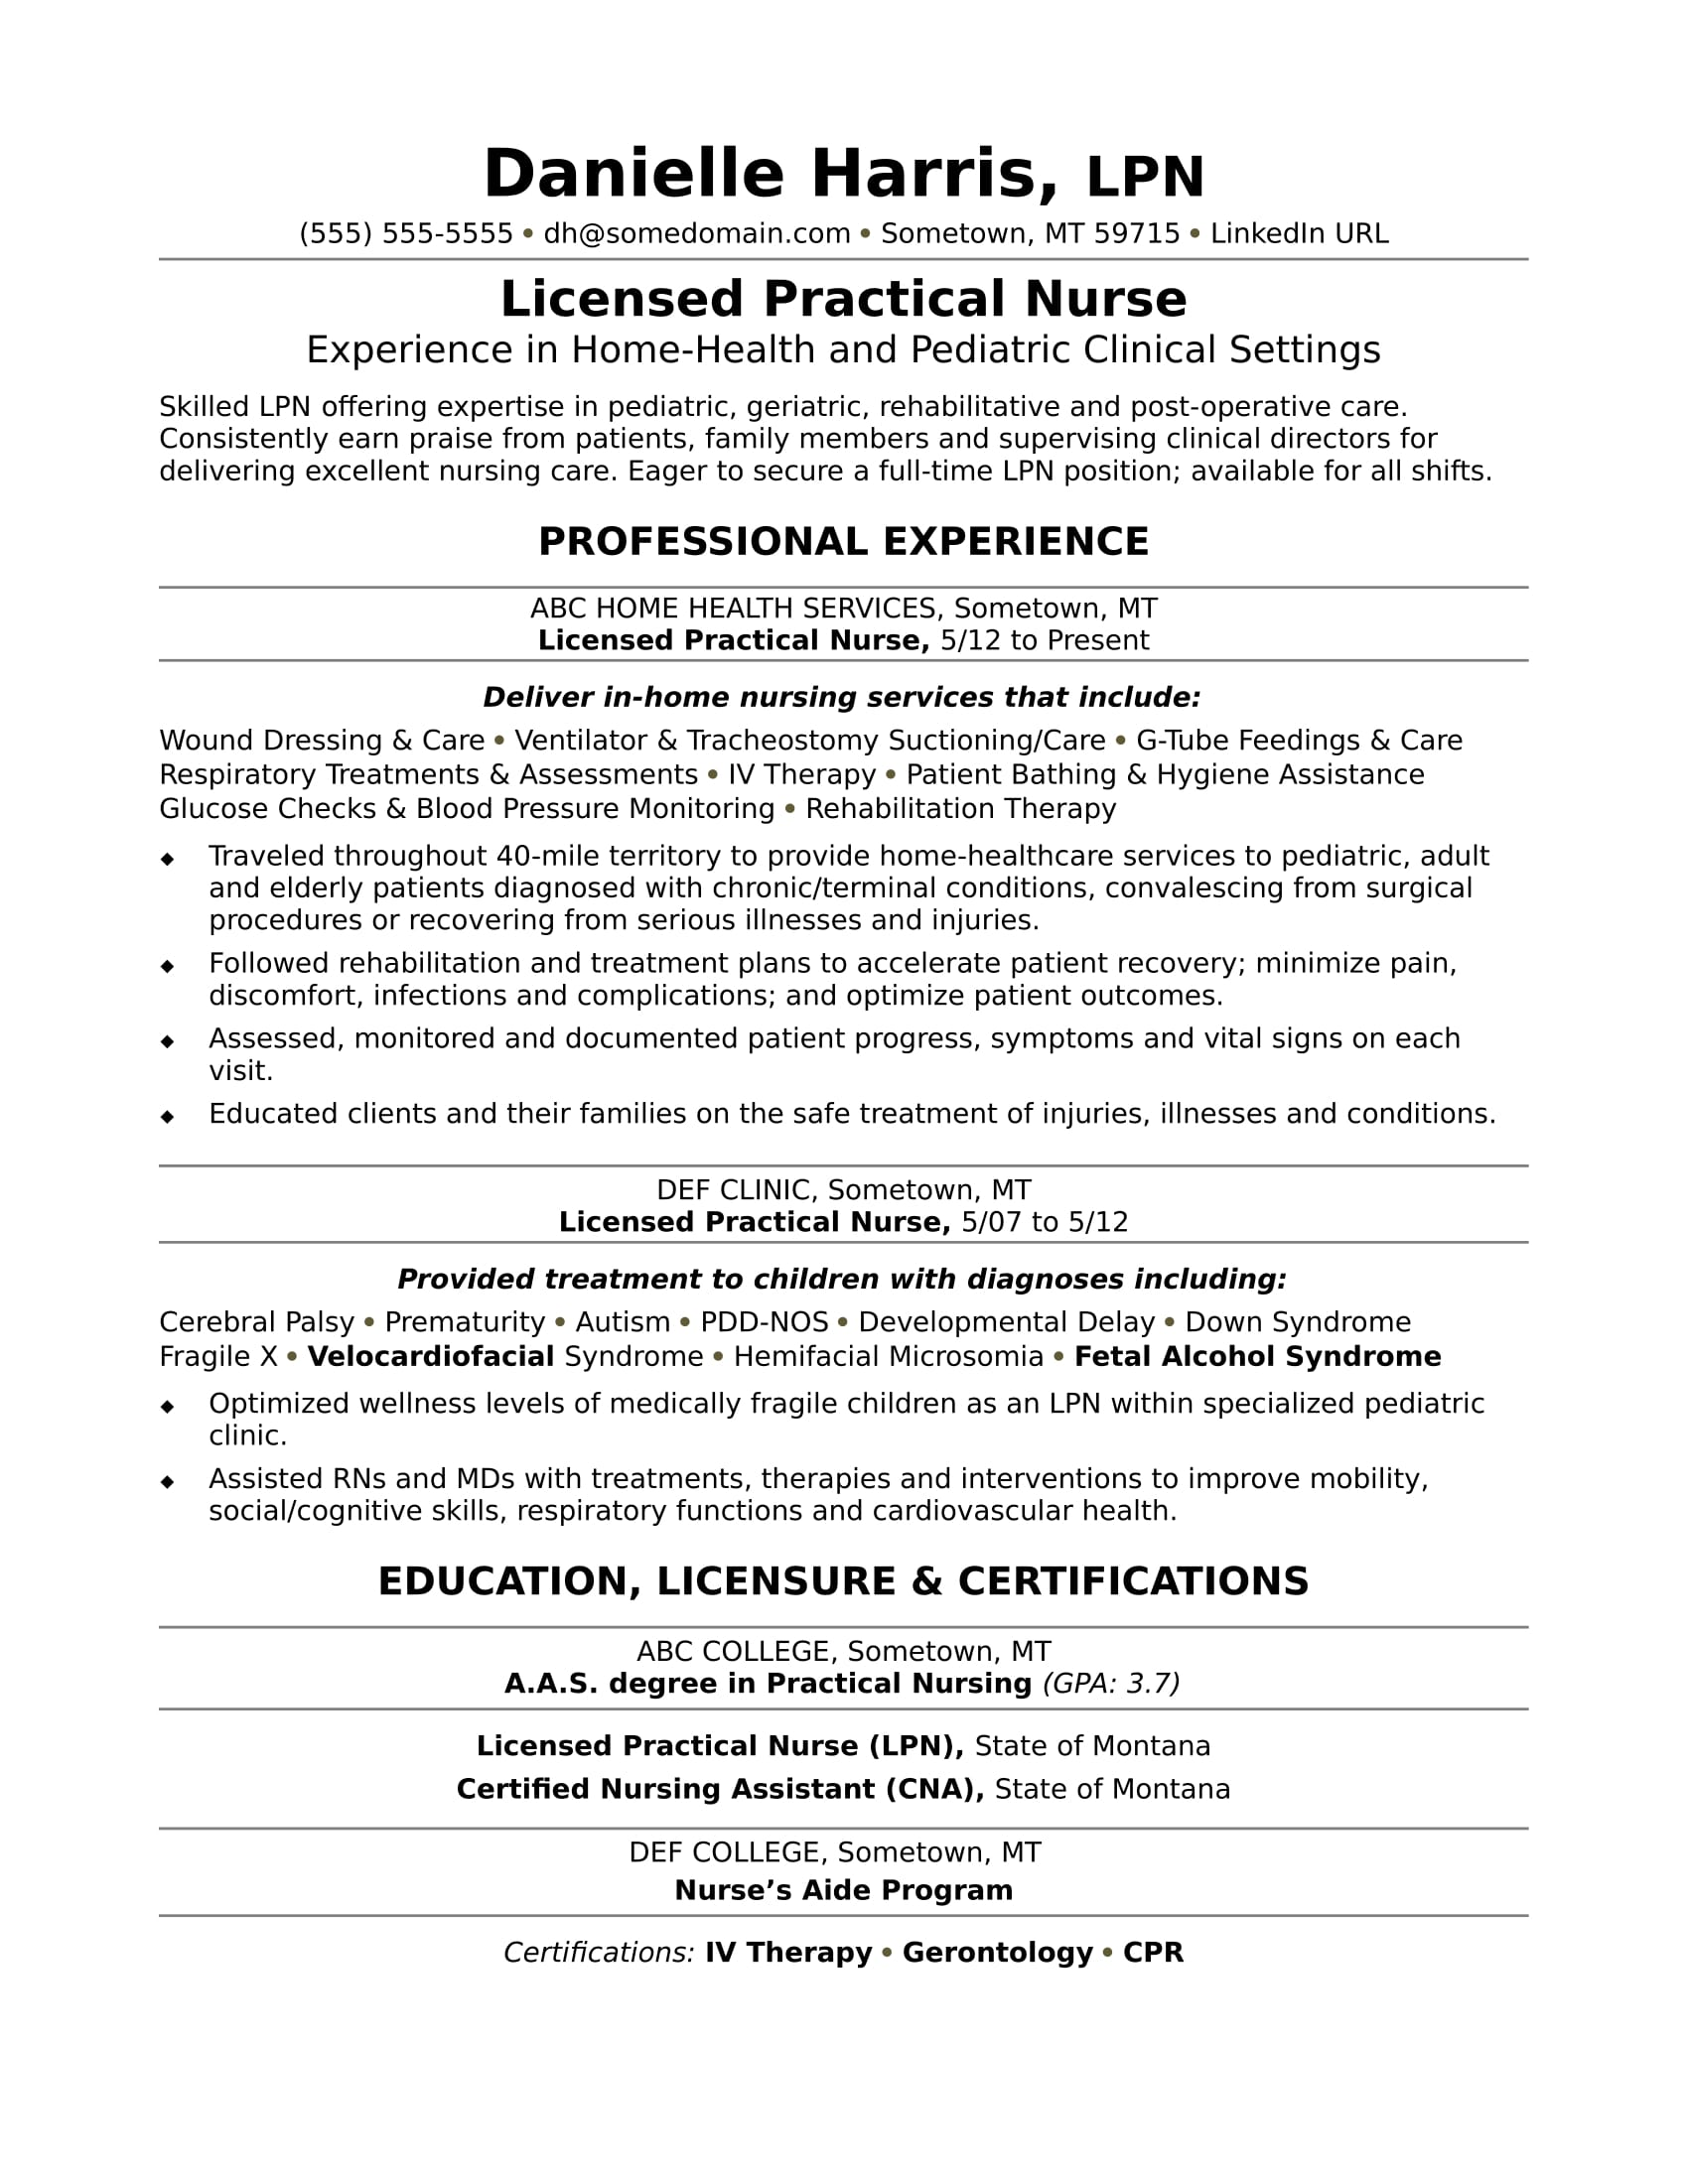 Licensed Practical Nurse Resume Sample  Resume Ideas For Skills